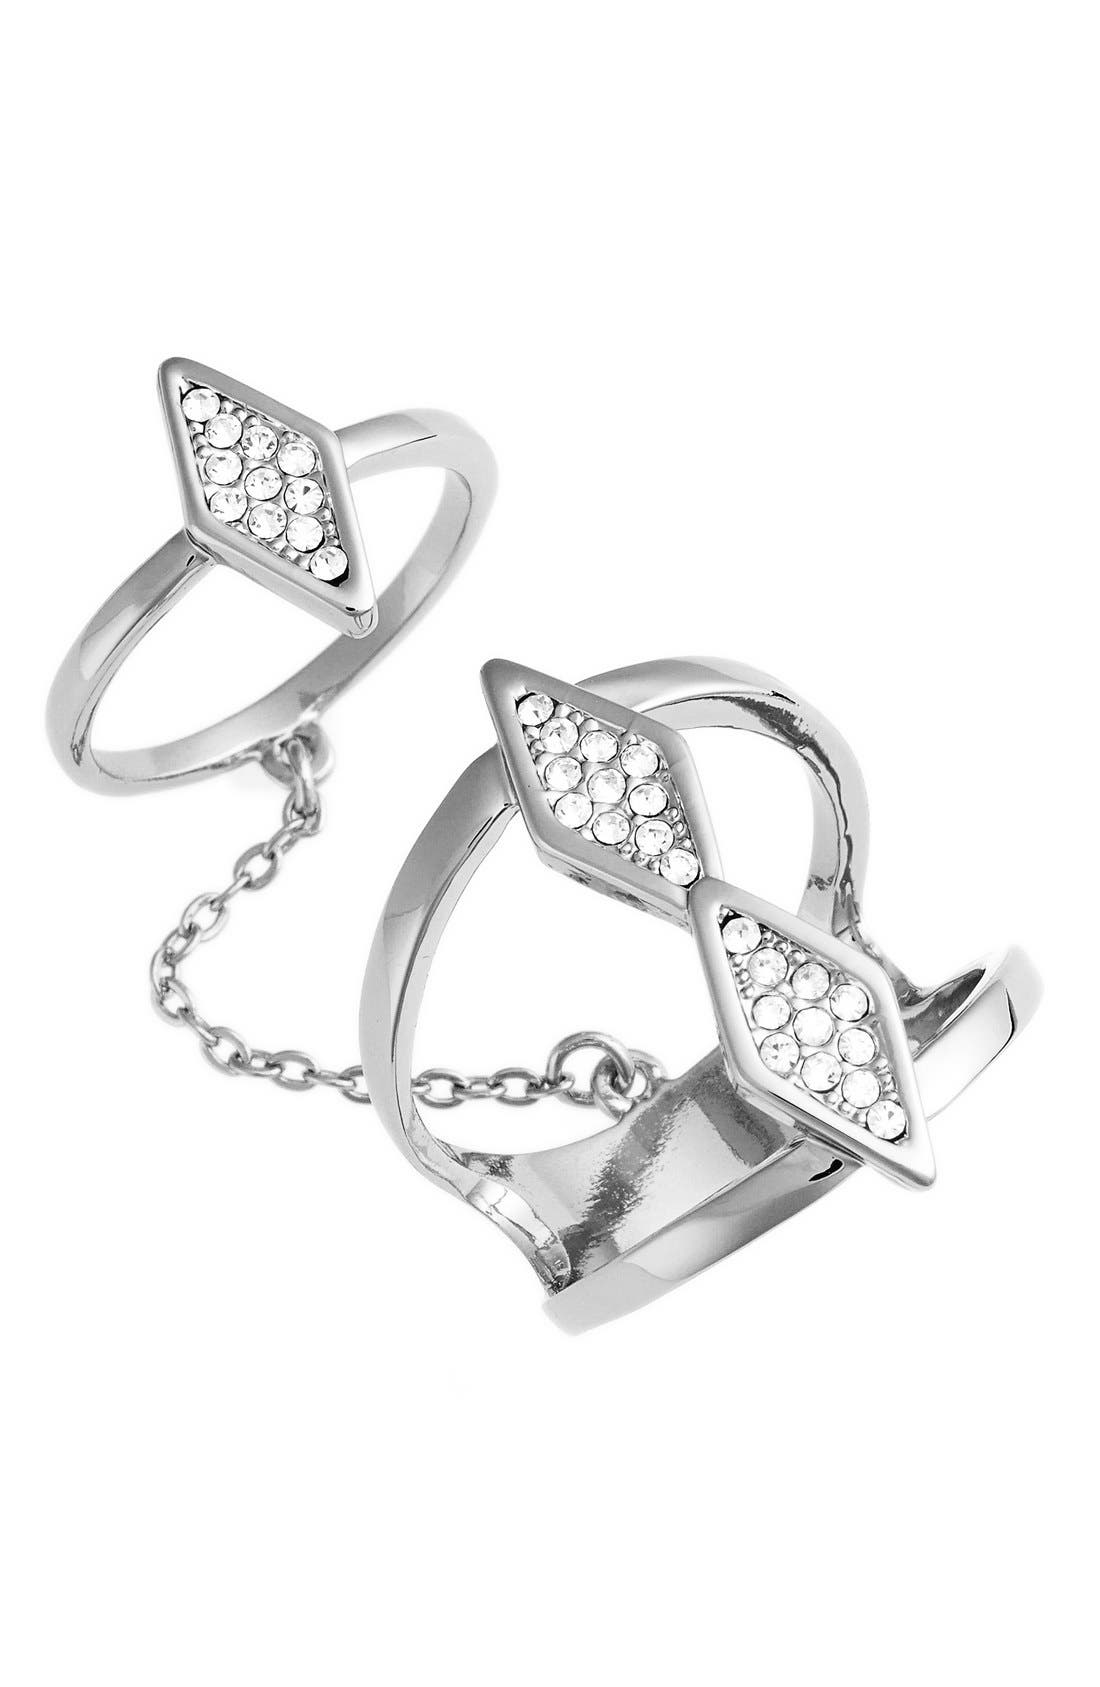 Main Image - Rebecca Minkoff Crystal Double Chain Ring